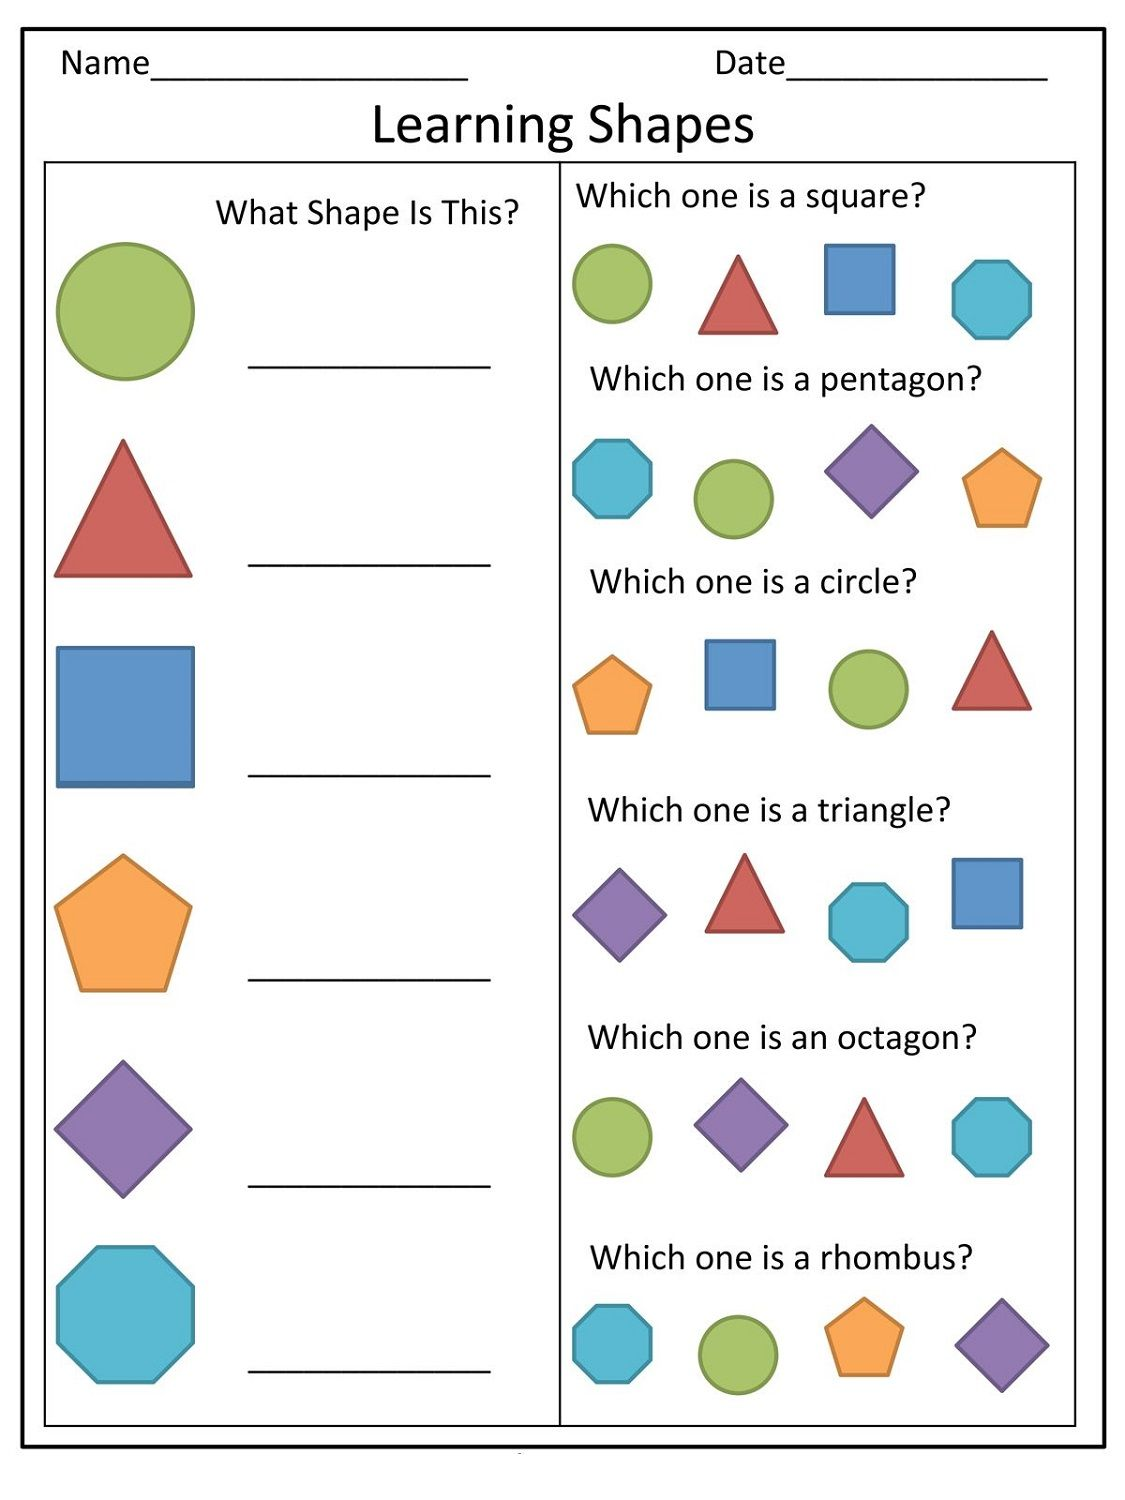 Basic Shapes Worksheets For Preschool Shapes Worksheet Kindergarten Shape Worksheets For Preschool Shapes Preschool